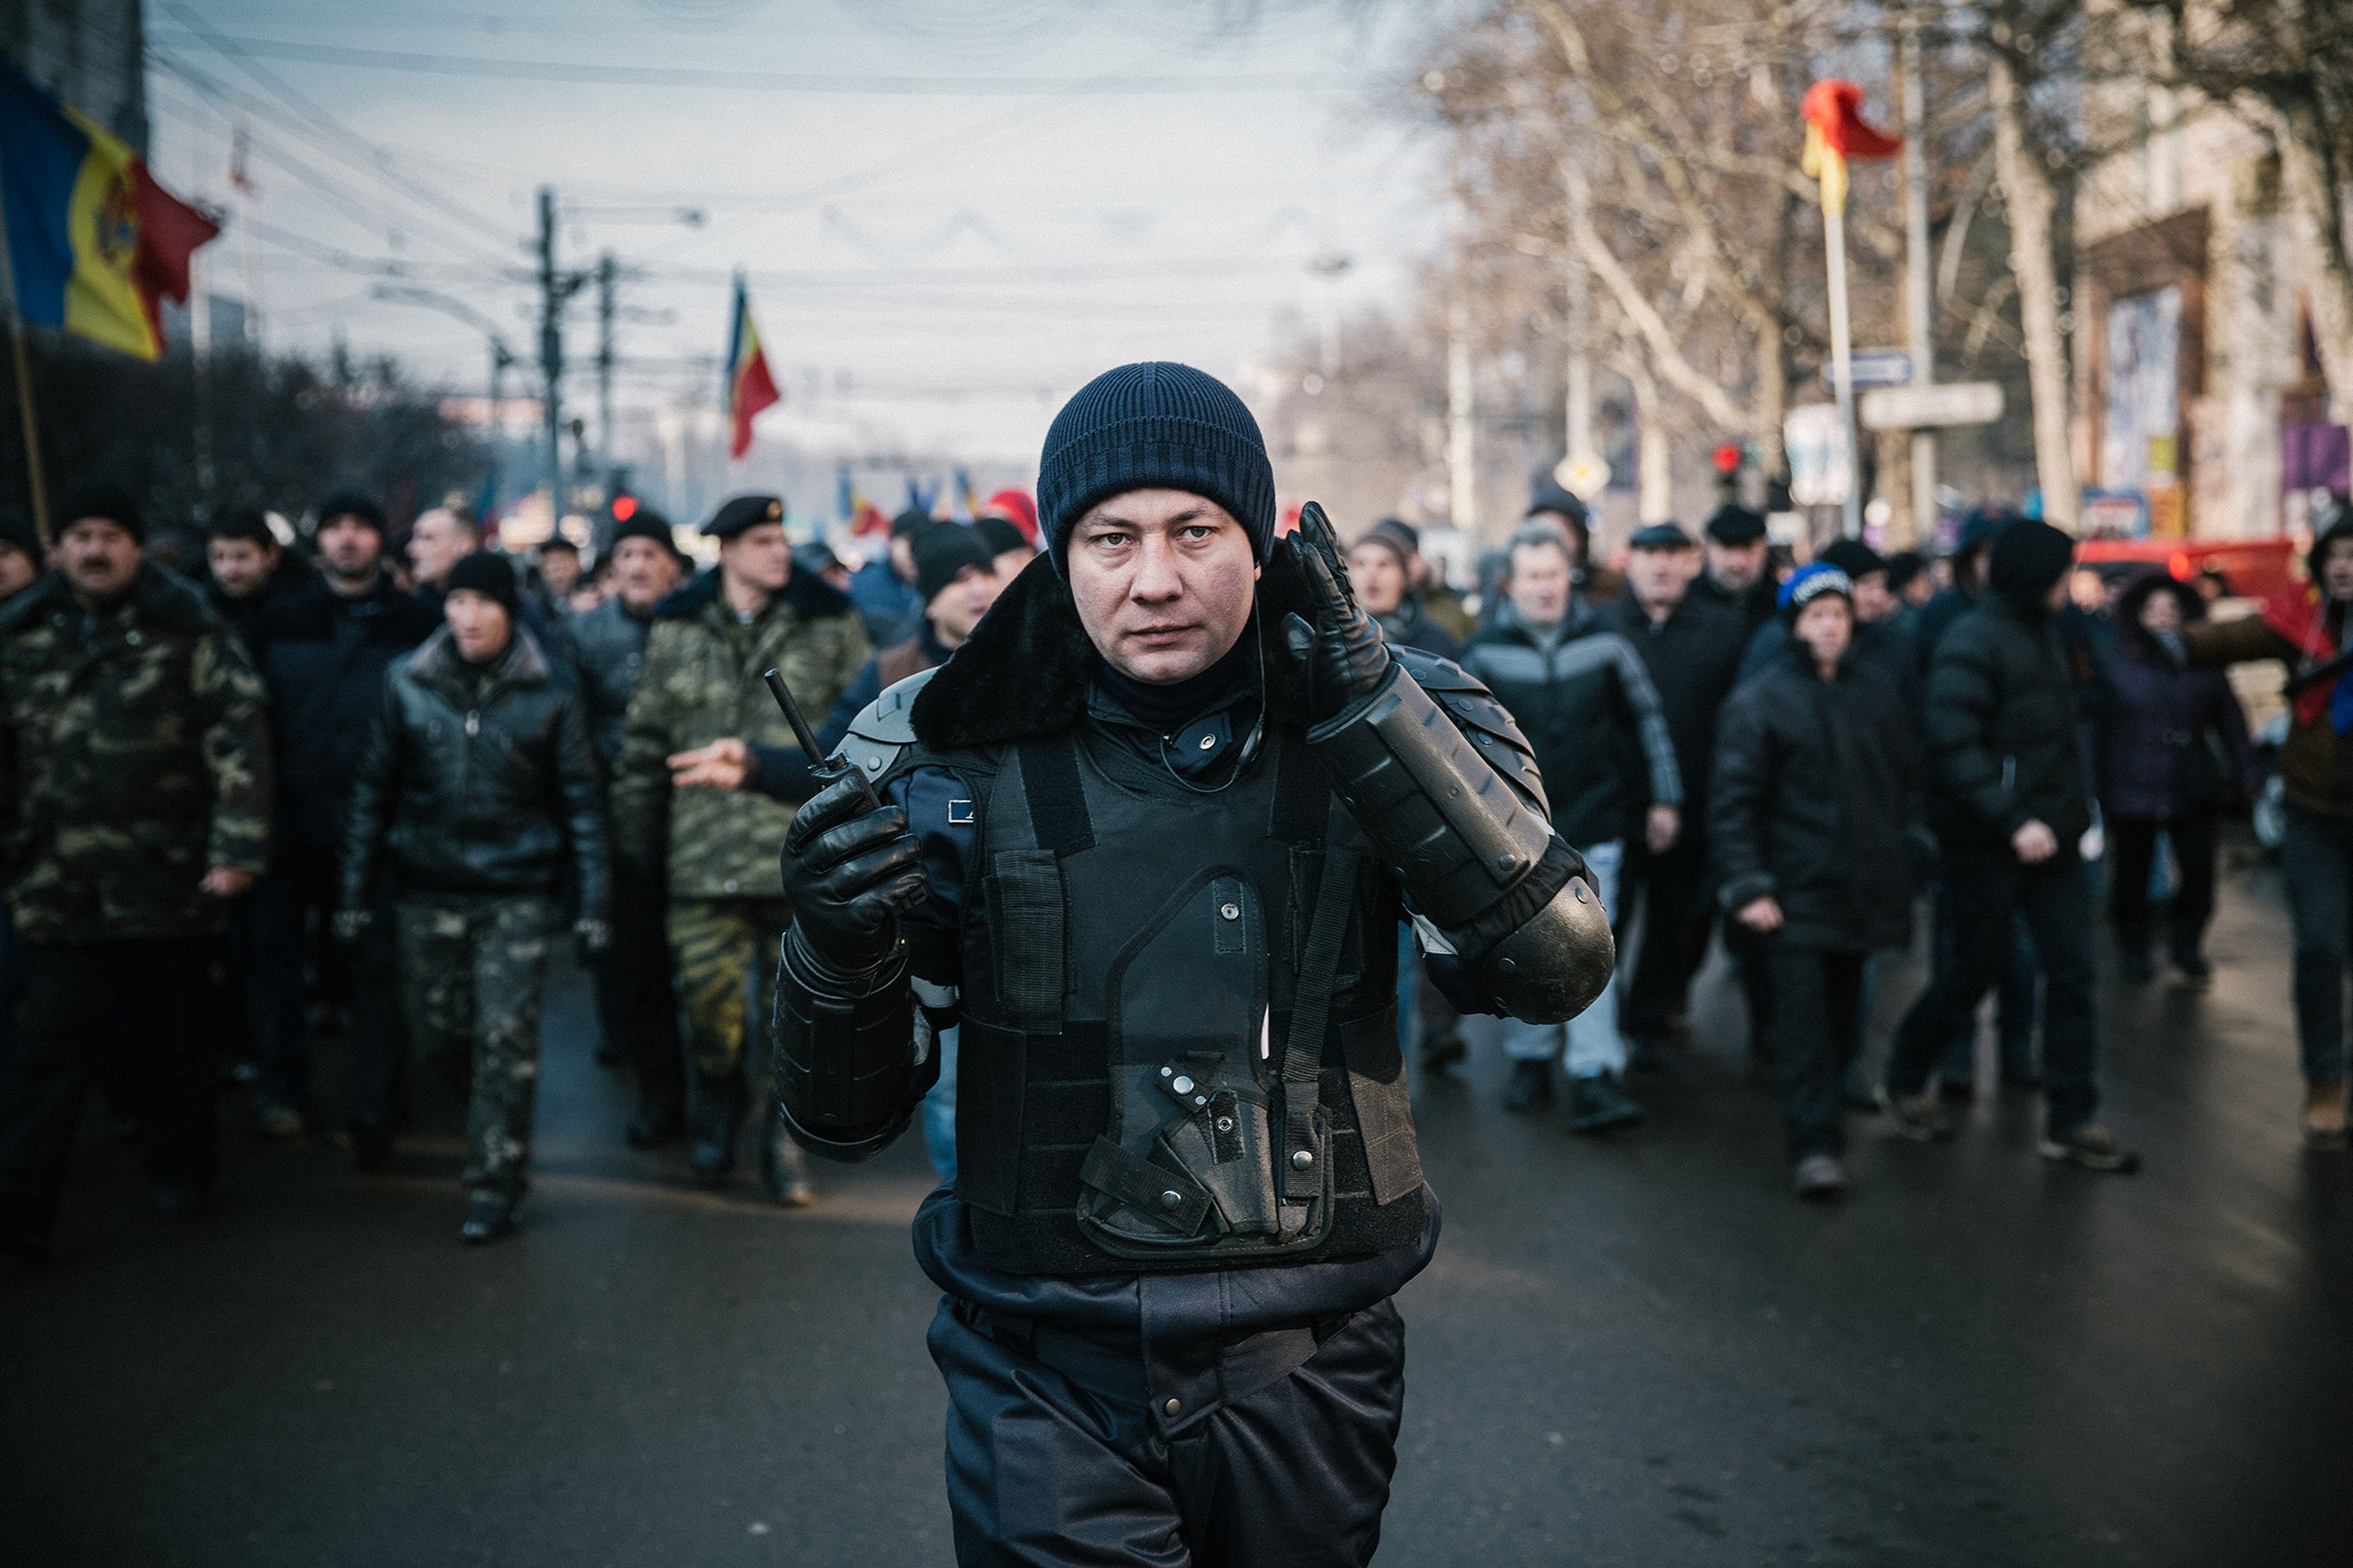 front view, real people, men, day, outdoors, large group of people, warm clothing, crowd, young adult, city, riot, adult, people